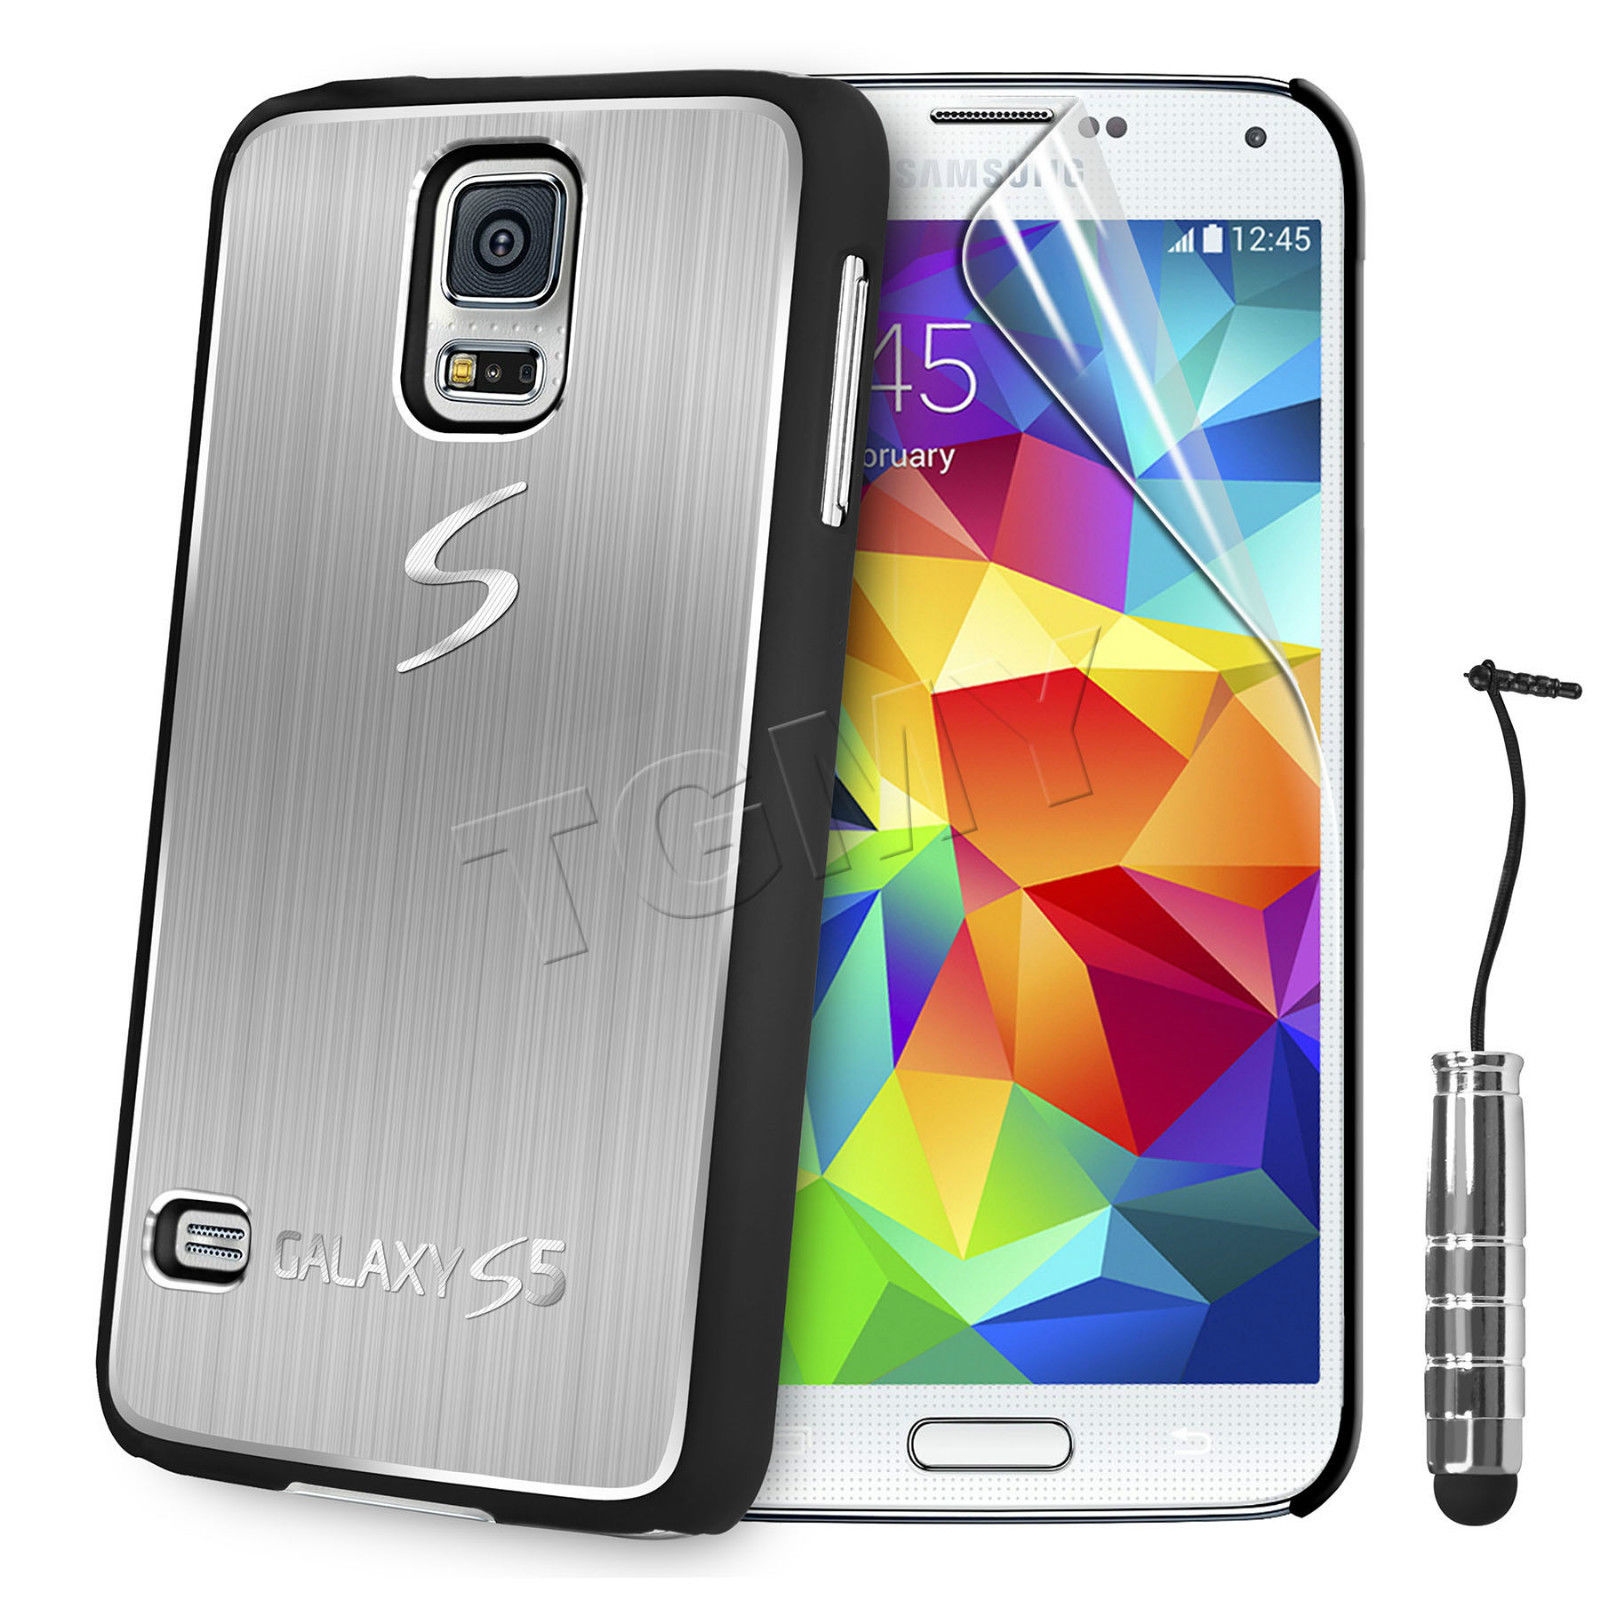 carcasa samsung galaxy s5 mini